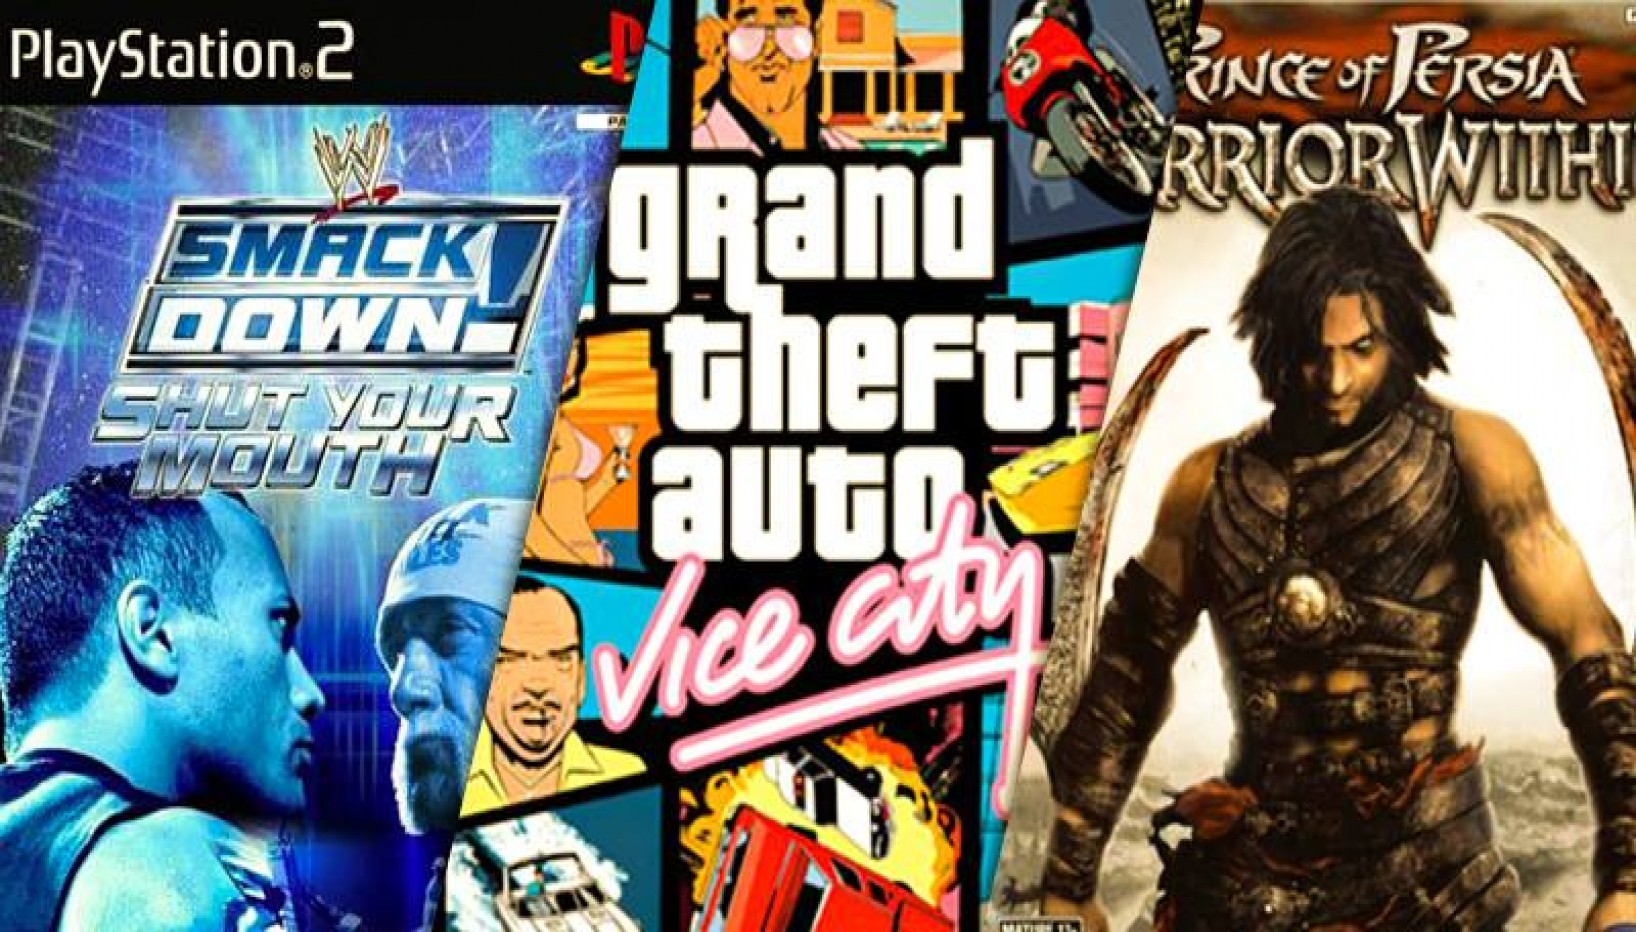 Here Are 11 Of The Most Nostalgic Games From The 2000s